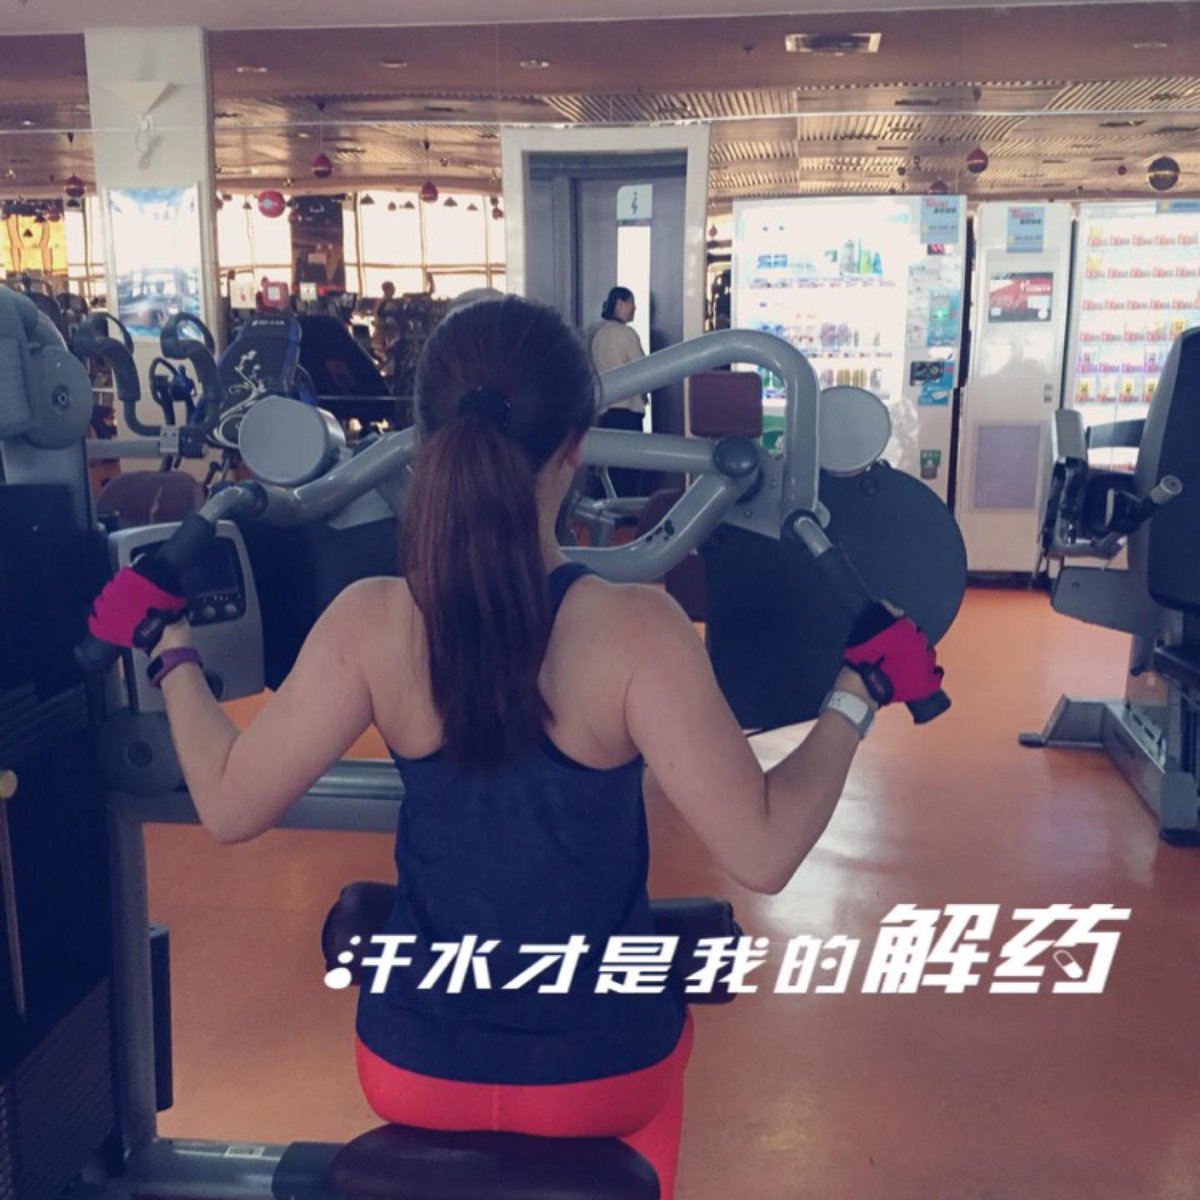 I'm at 一兆韦德健身会所 | Tera Wellness Club in Shanghai https://t.co/29Ym2pSyHP http://t.co/o2yuwUDFfV